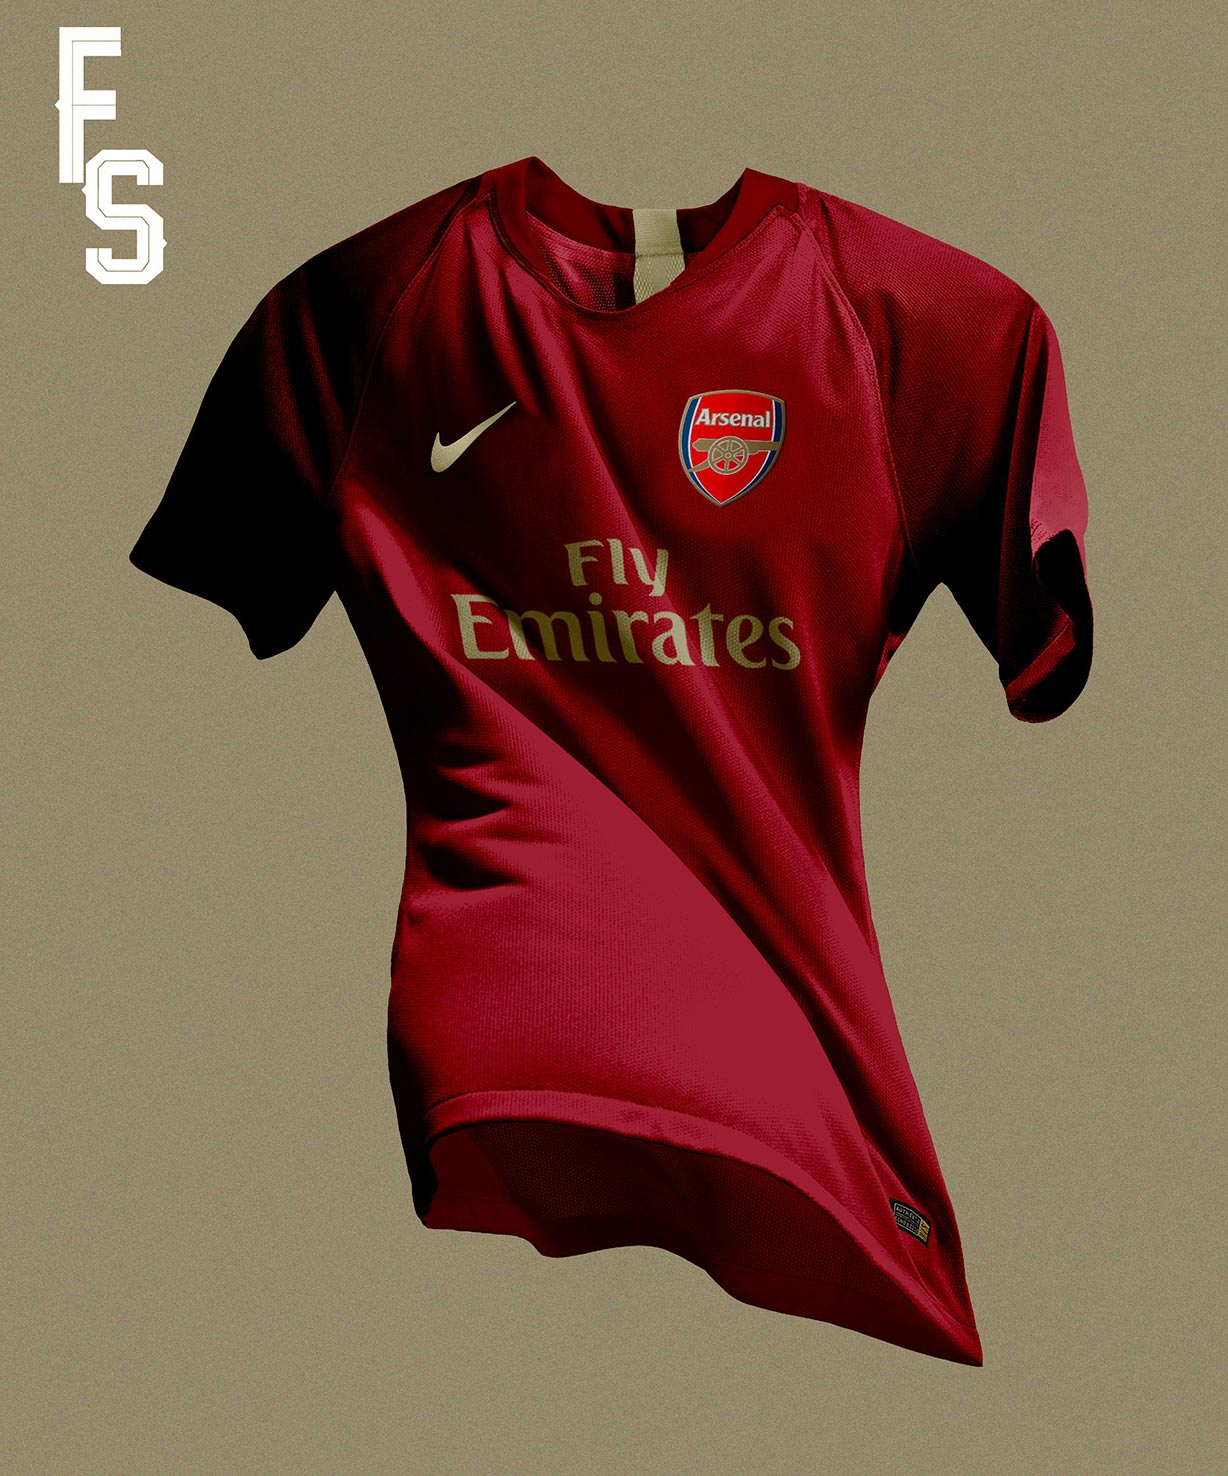 new concept b4a35 73172 Nike Arsenal 18-19 Home Kit Concept by Franco Sosa | Futbolgrid